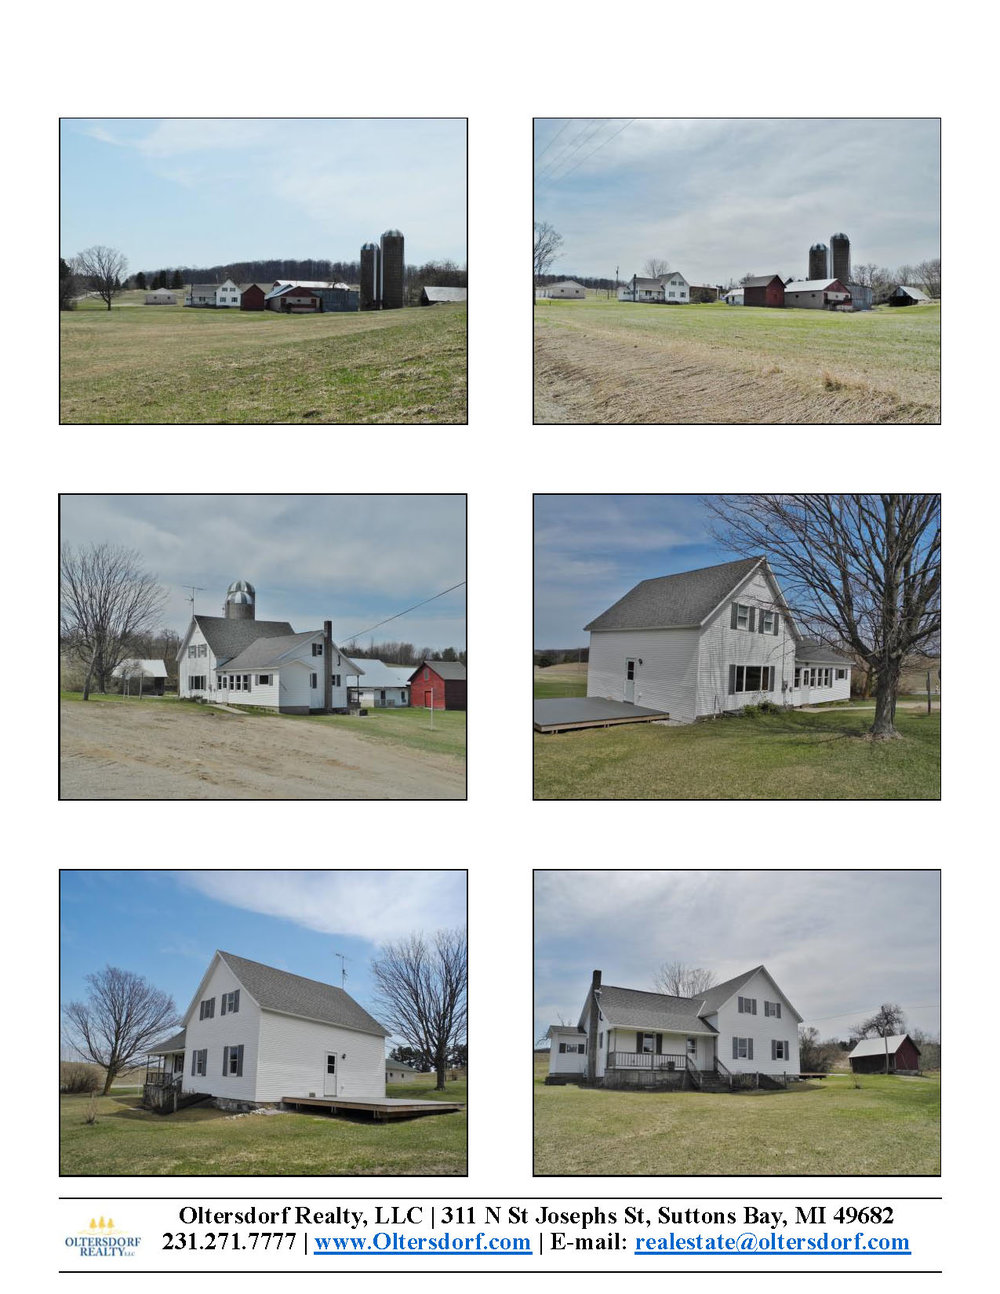 910 S Popp Road, Lake Leelanau - For sale by Oltersdorf Realty LLC (photo pages)_Page_02.jpg